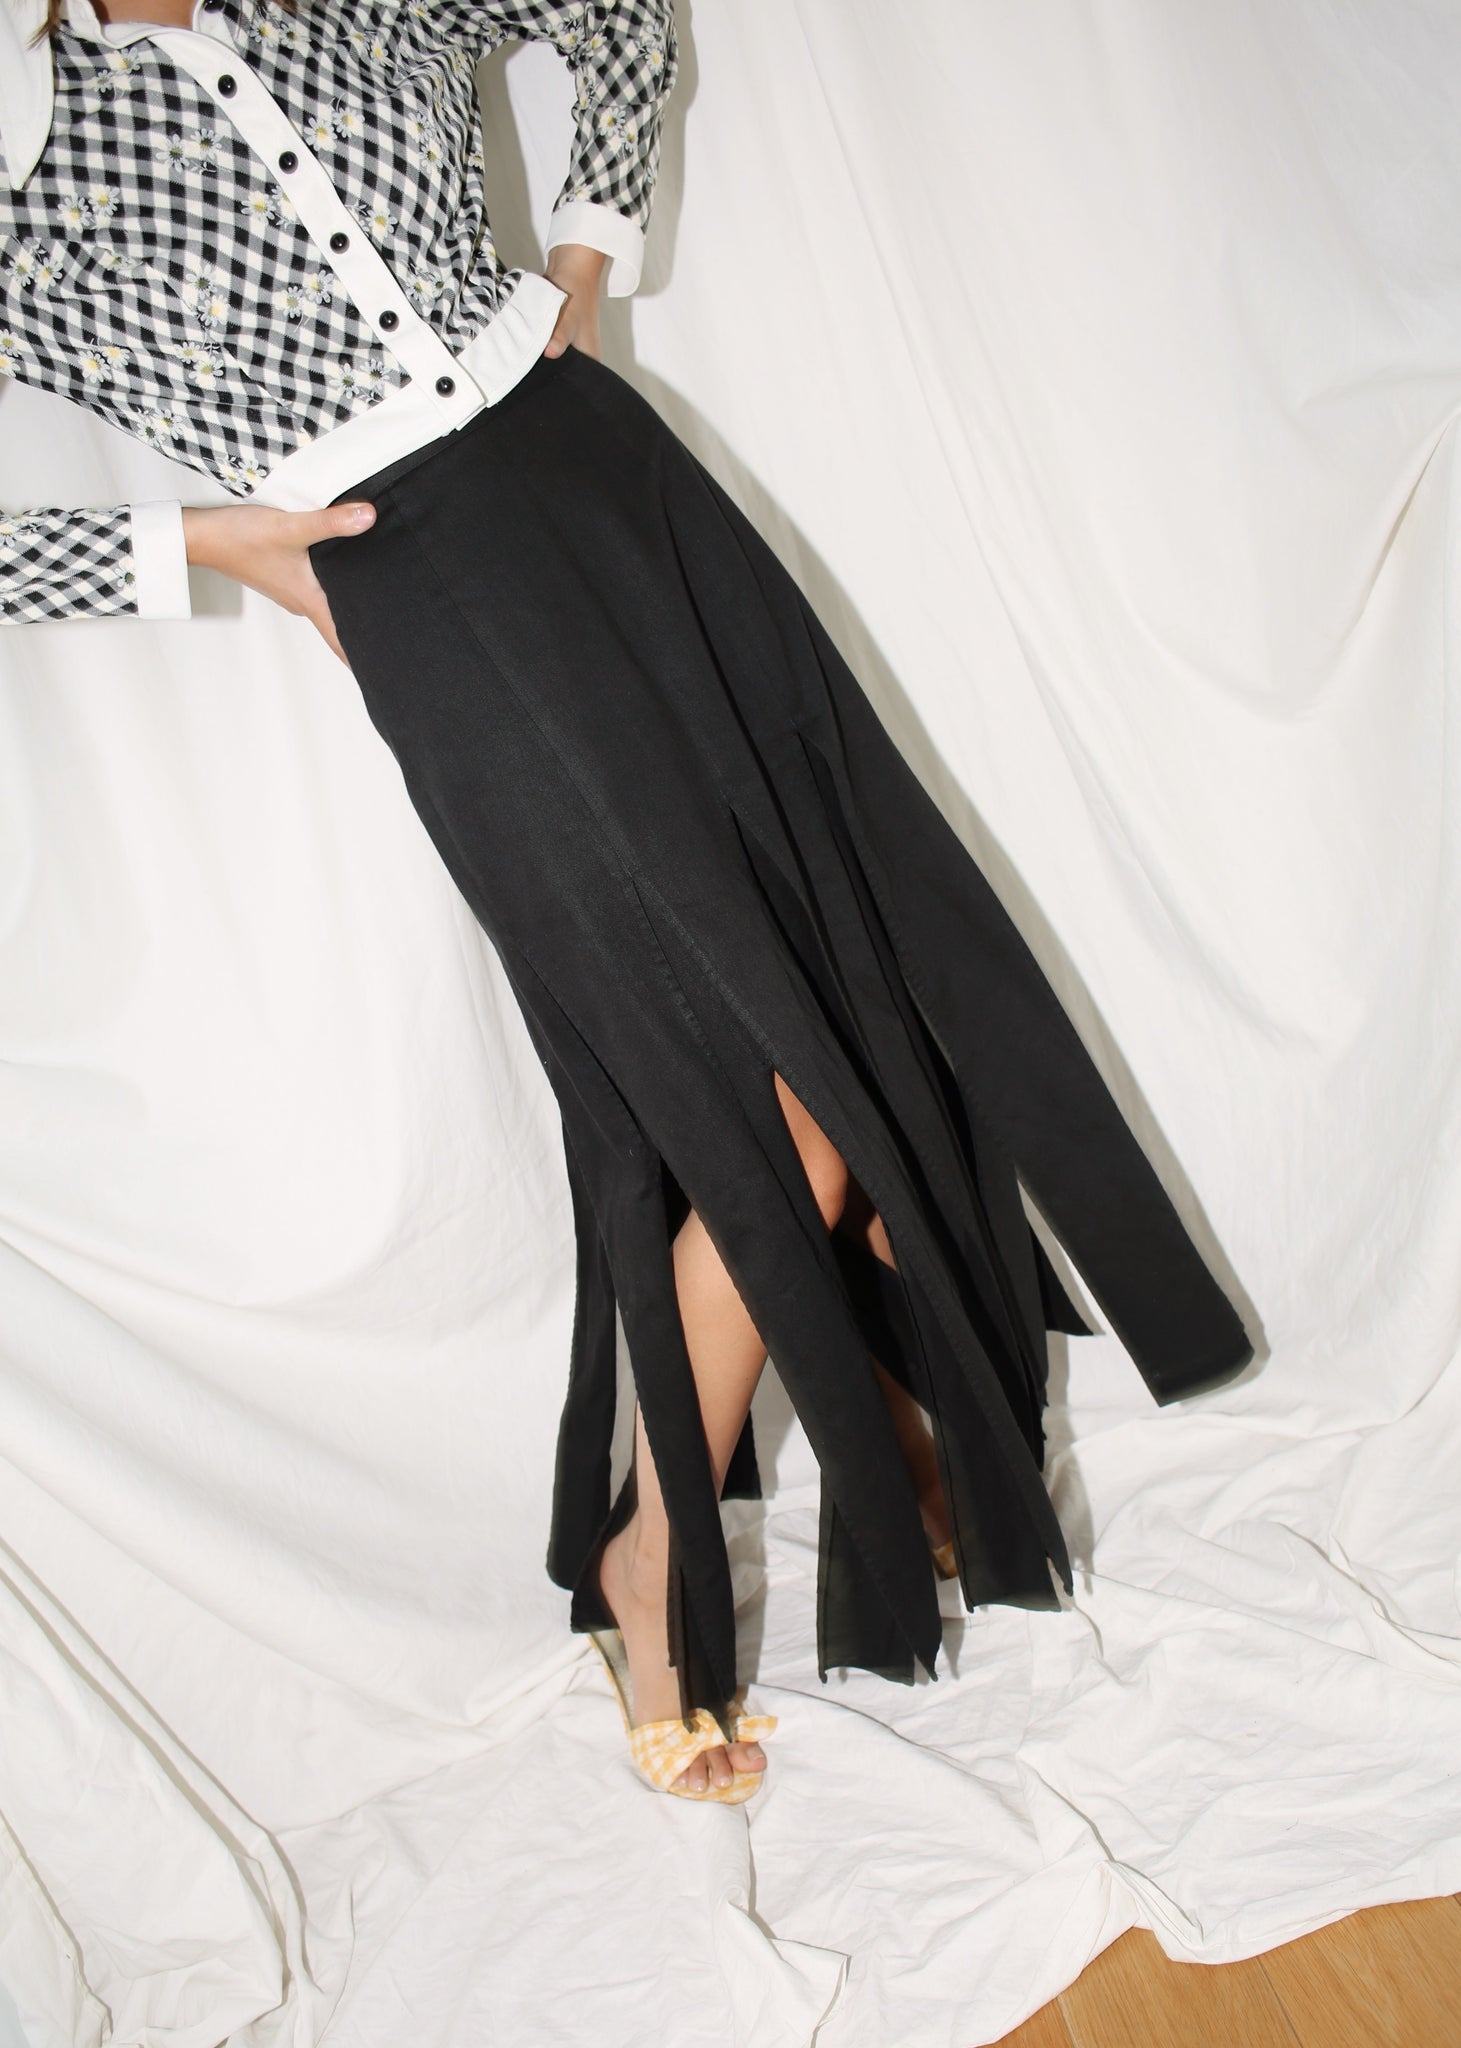 VINTAGE BLACK PANEL SLIT SKIRT (M)